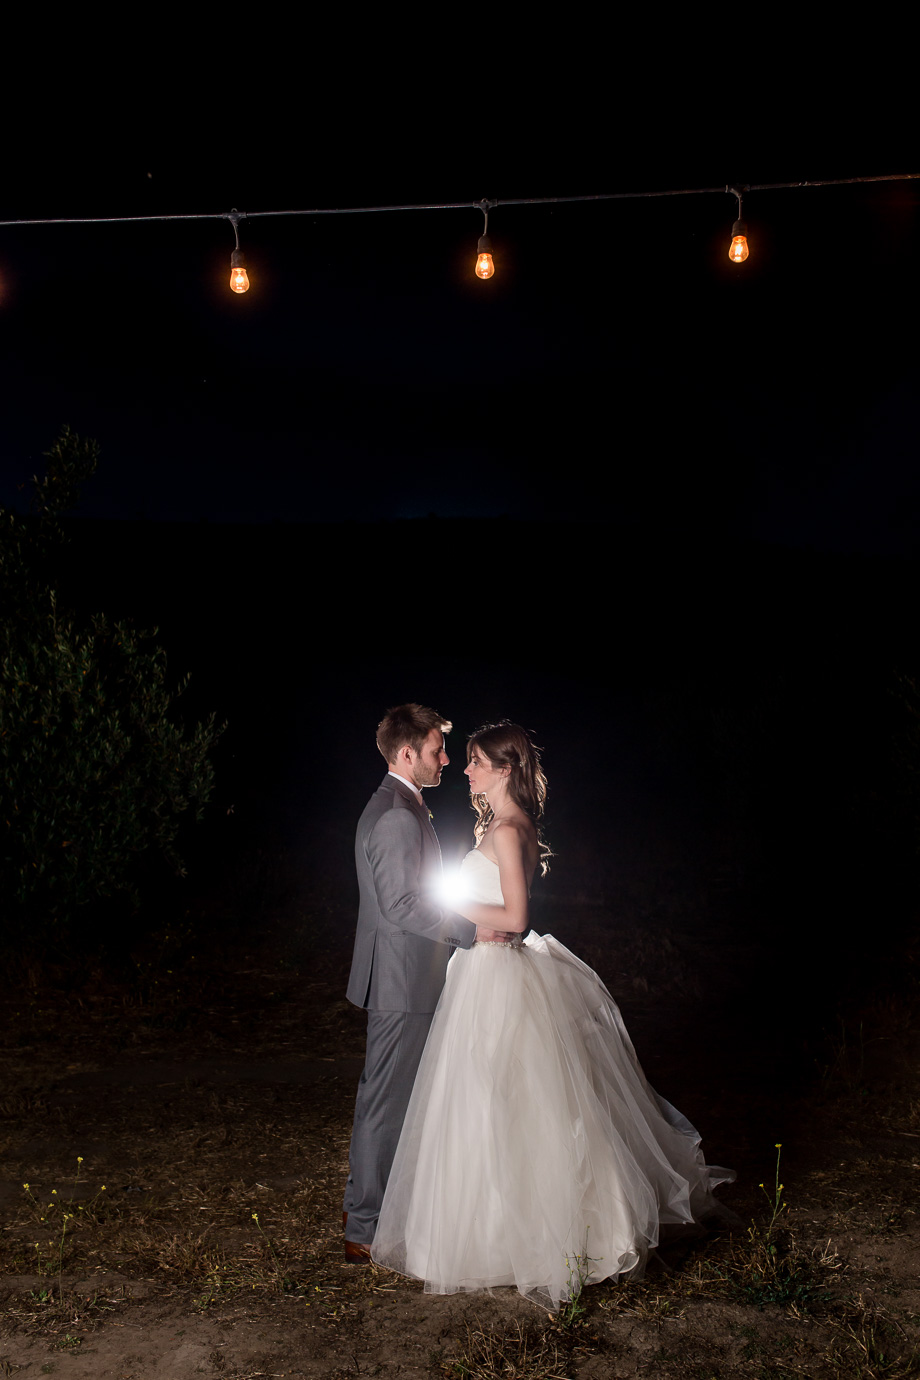 a night shot of bride and groom under the cafe string lights